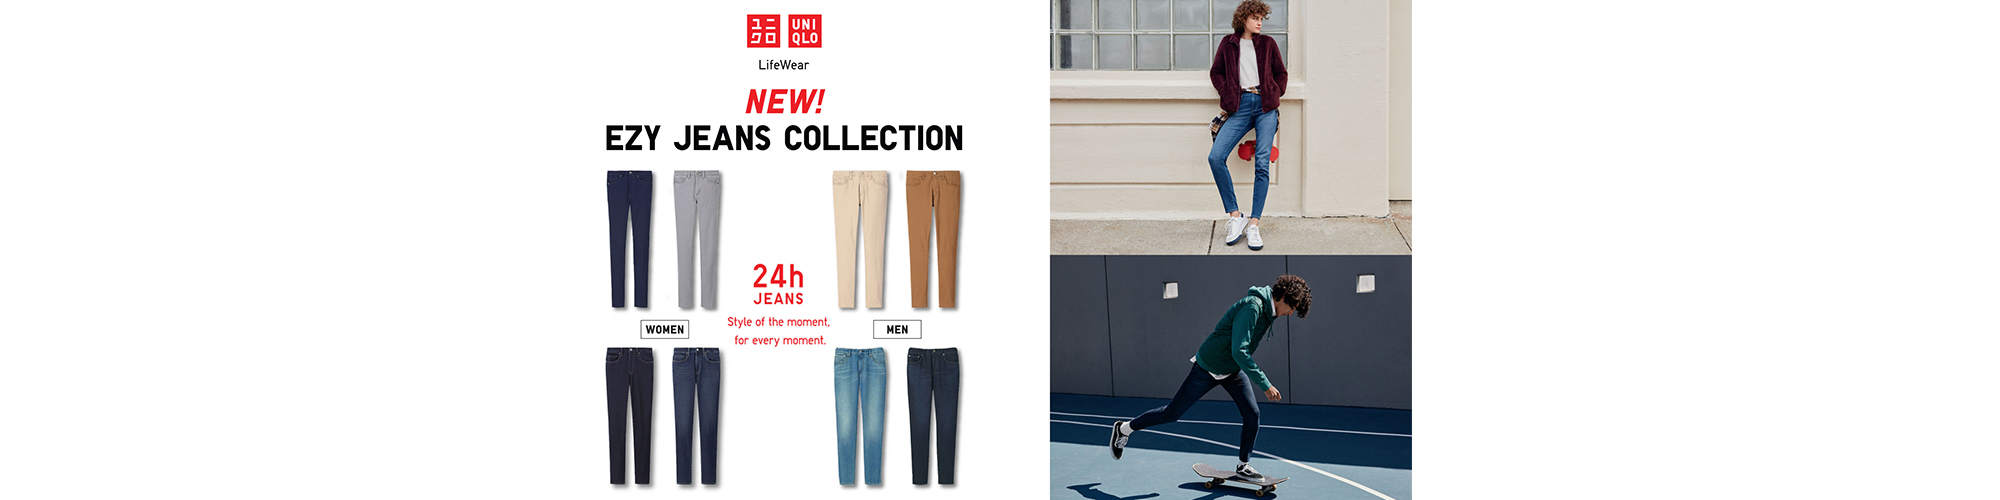 km_website_slider_uniqlo_120718